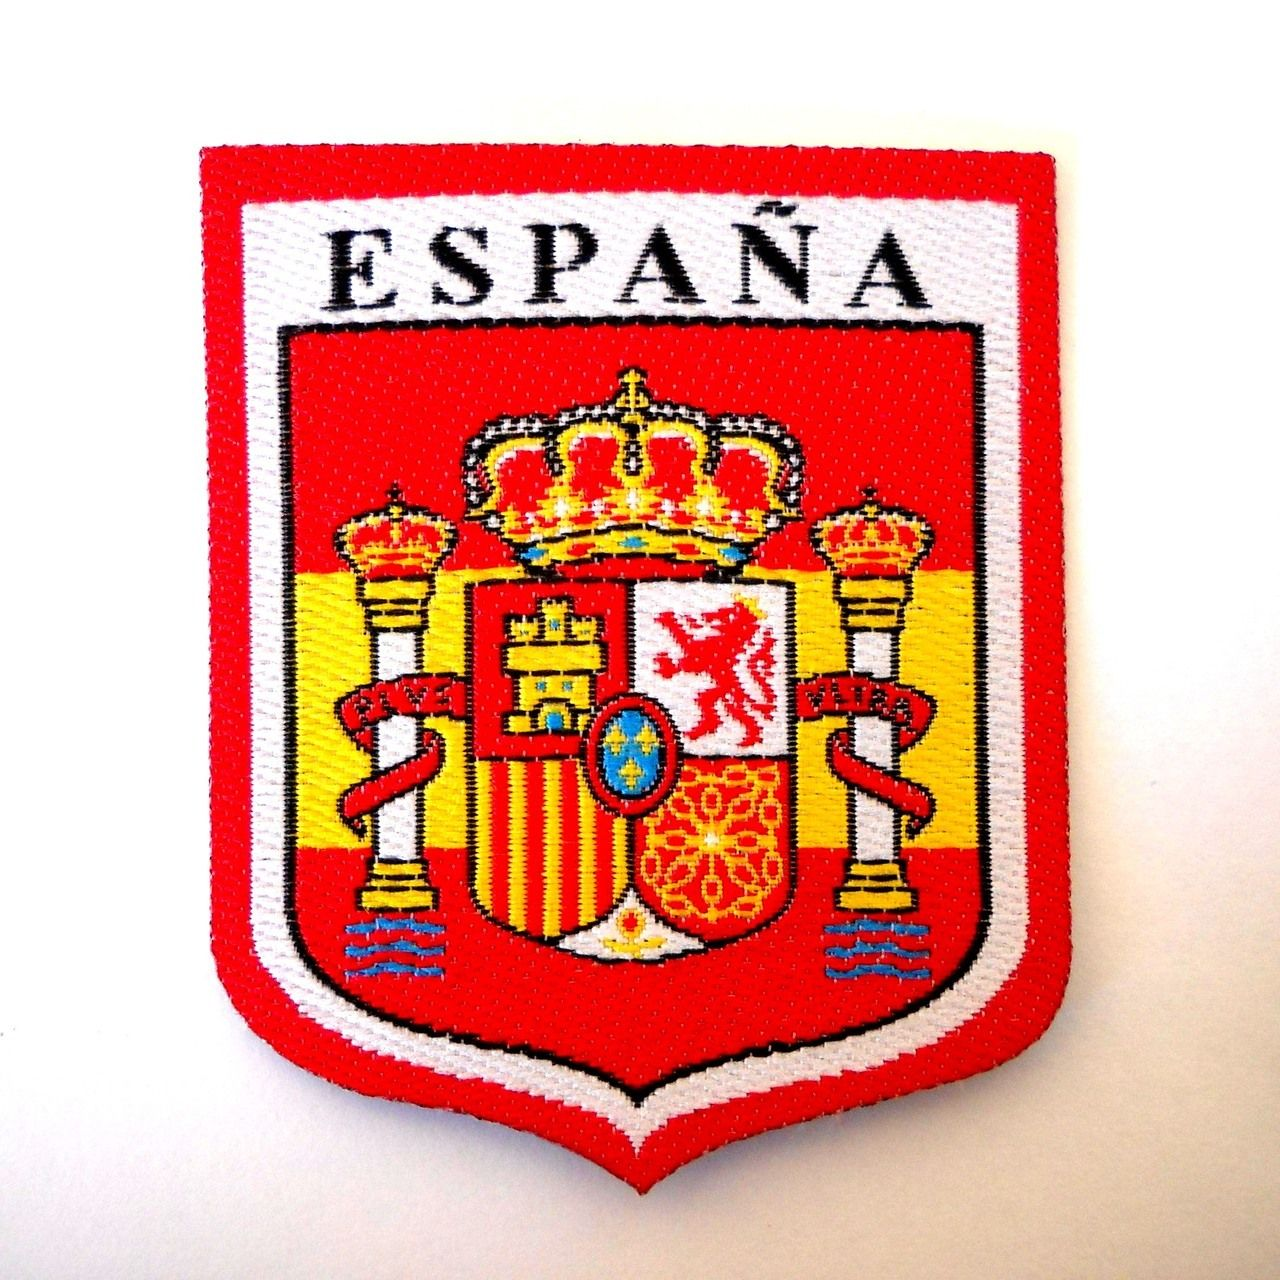 Spain Coat Of Arms National Flag Embroidered Sew On Spanish Shield Cloth Patch Clothing Patches Cloth Badges National Flag